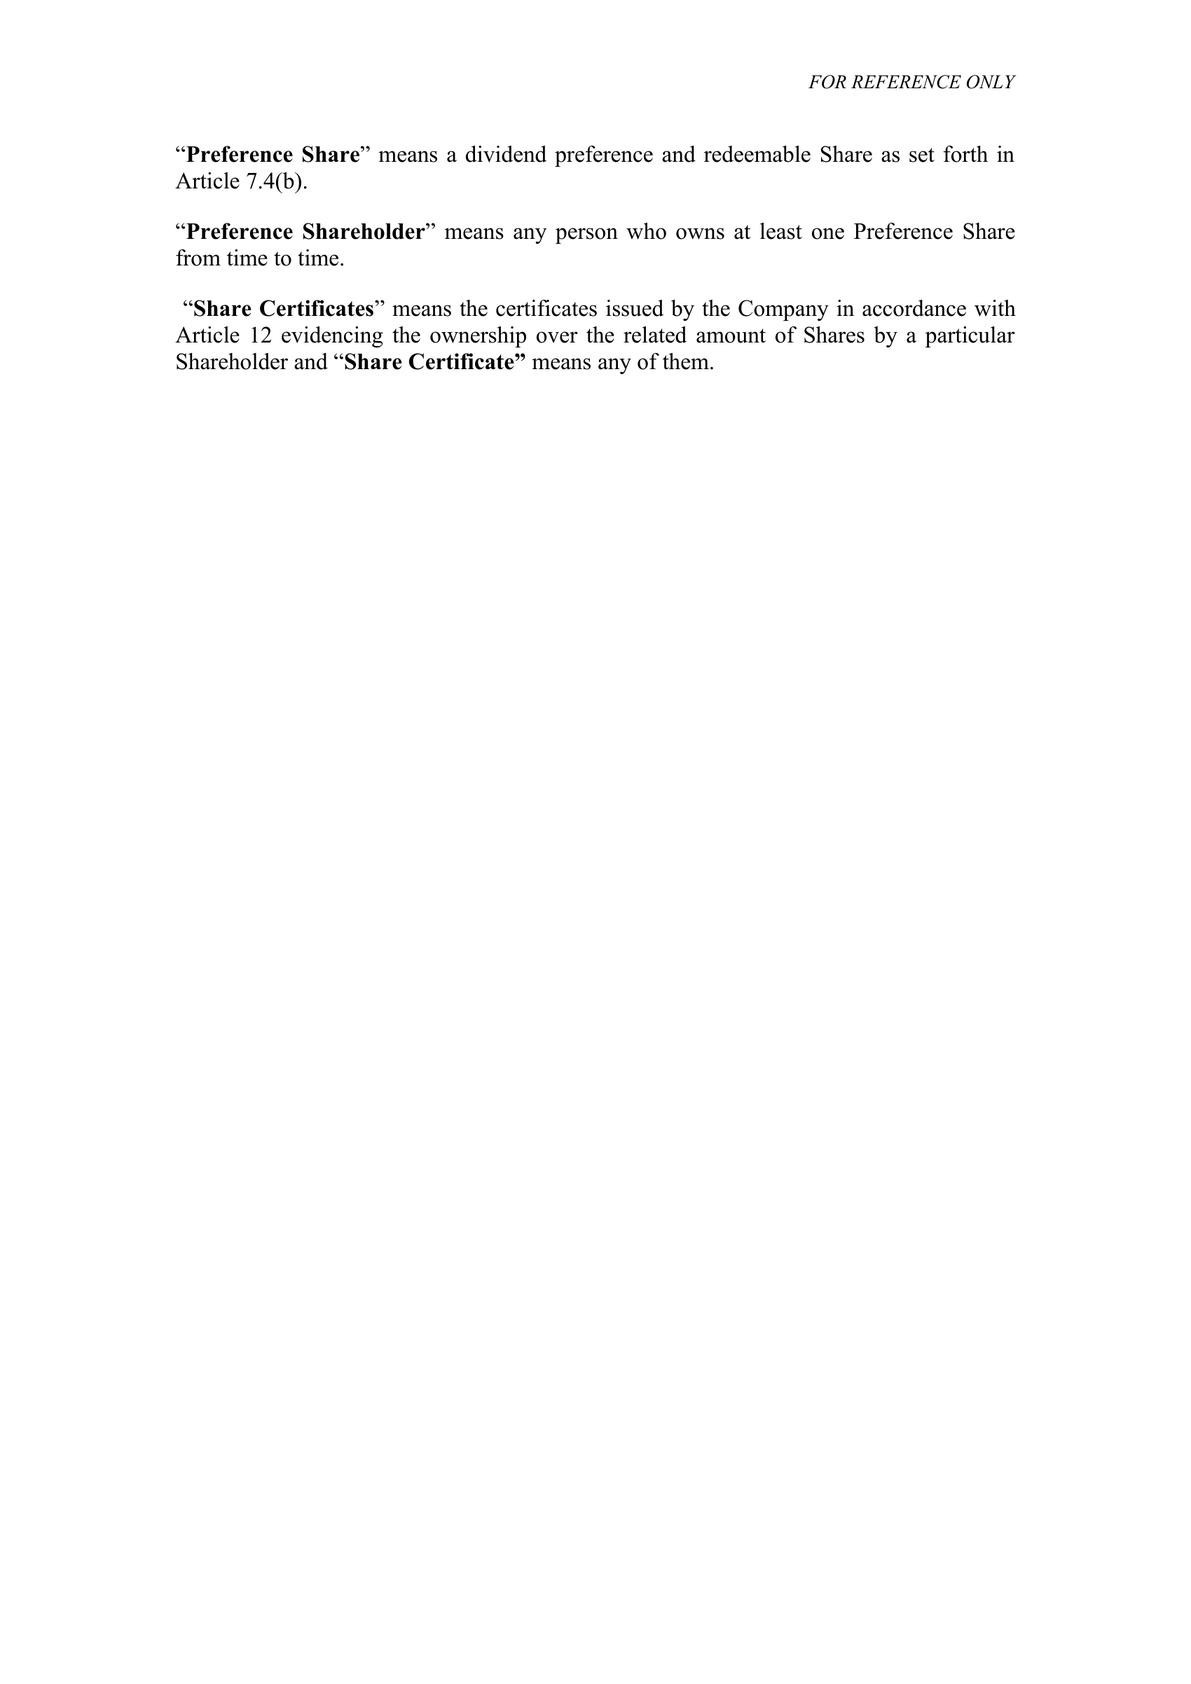 Joint stock company charter template in Vietnam (English)-7